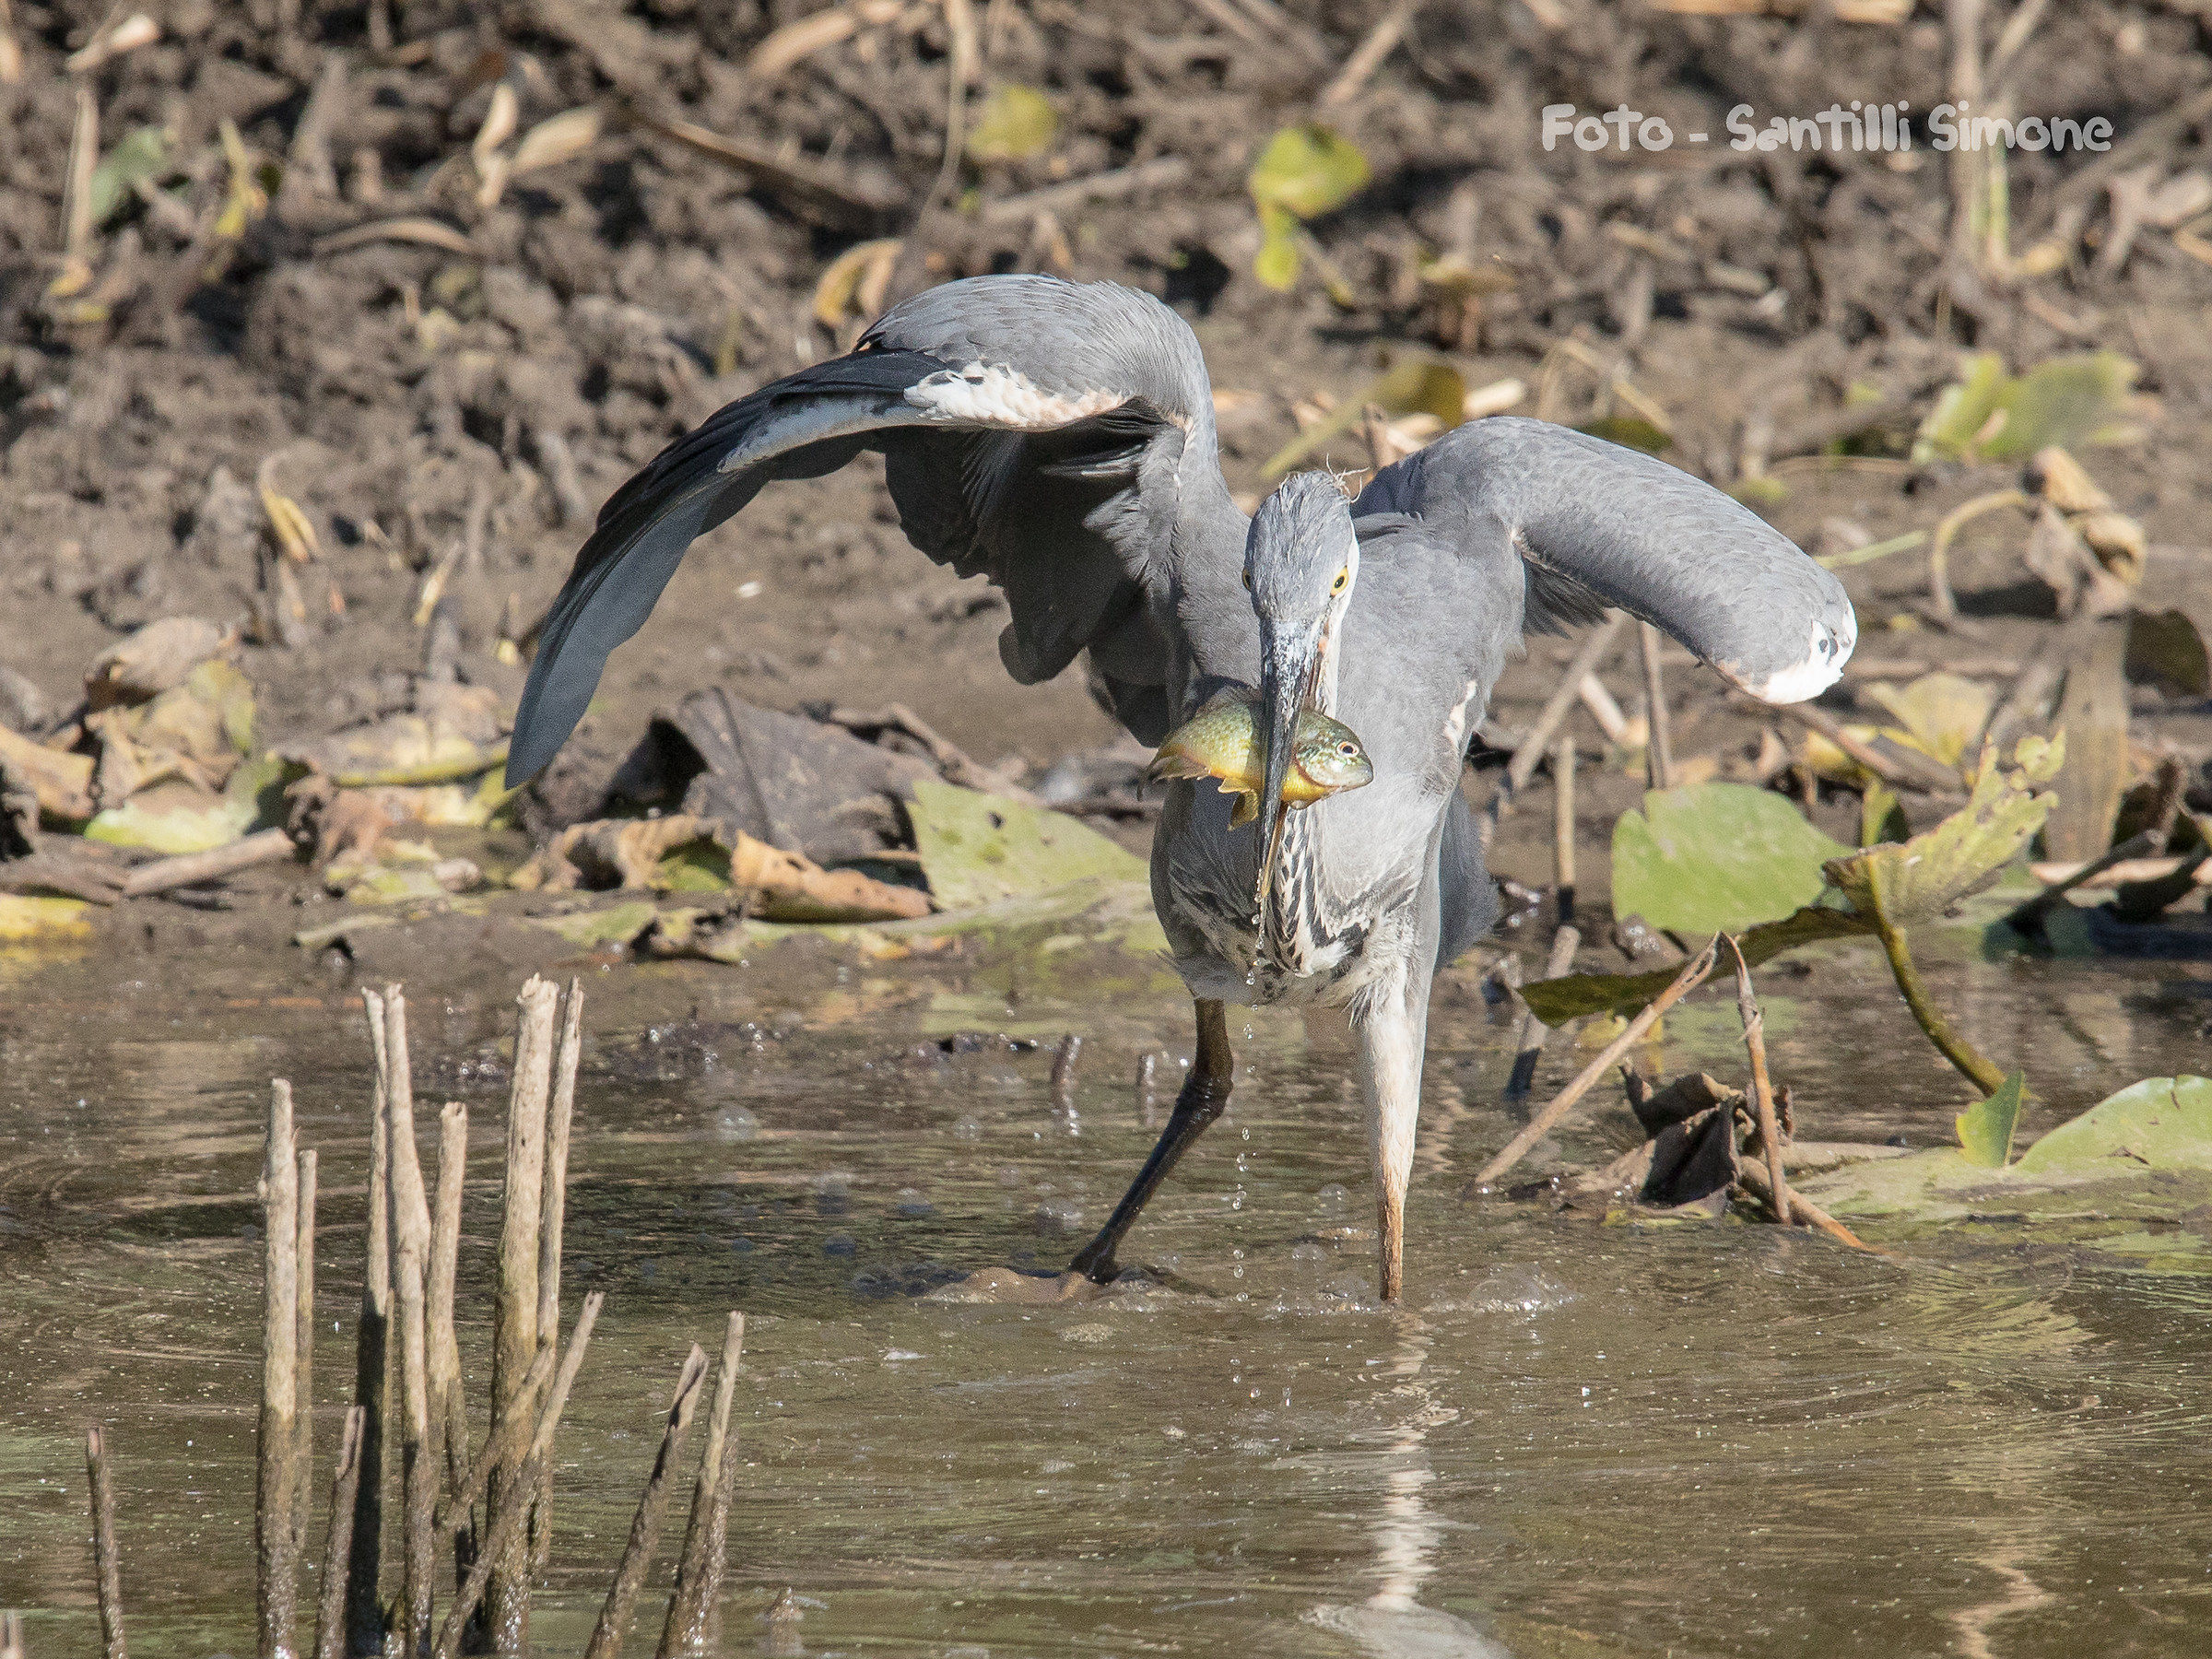 The expert and young heron...